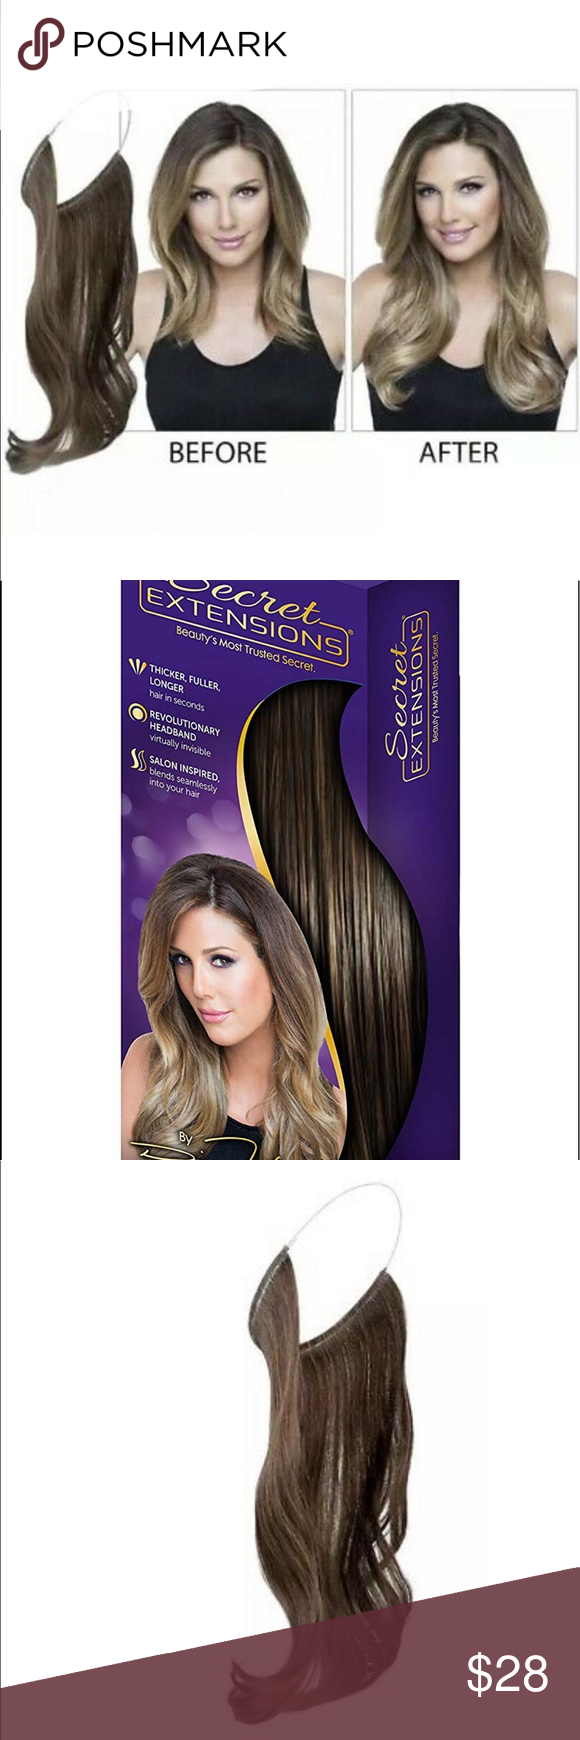 Daisy Fuentes Extensions Daisy Fuentes Daisy Extensions Hateful thoughts tends to come up in this series. pinterest